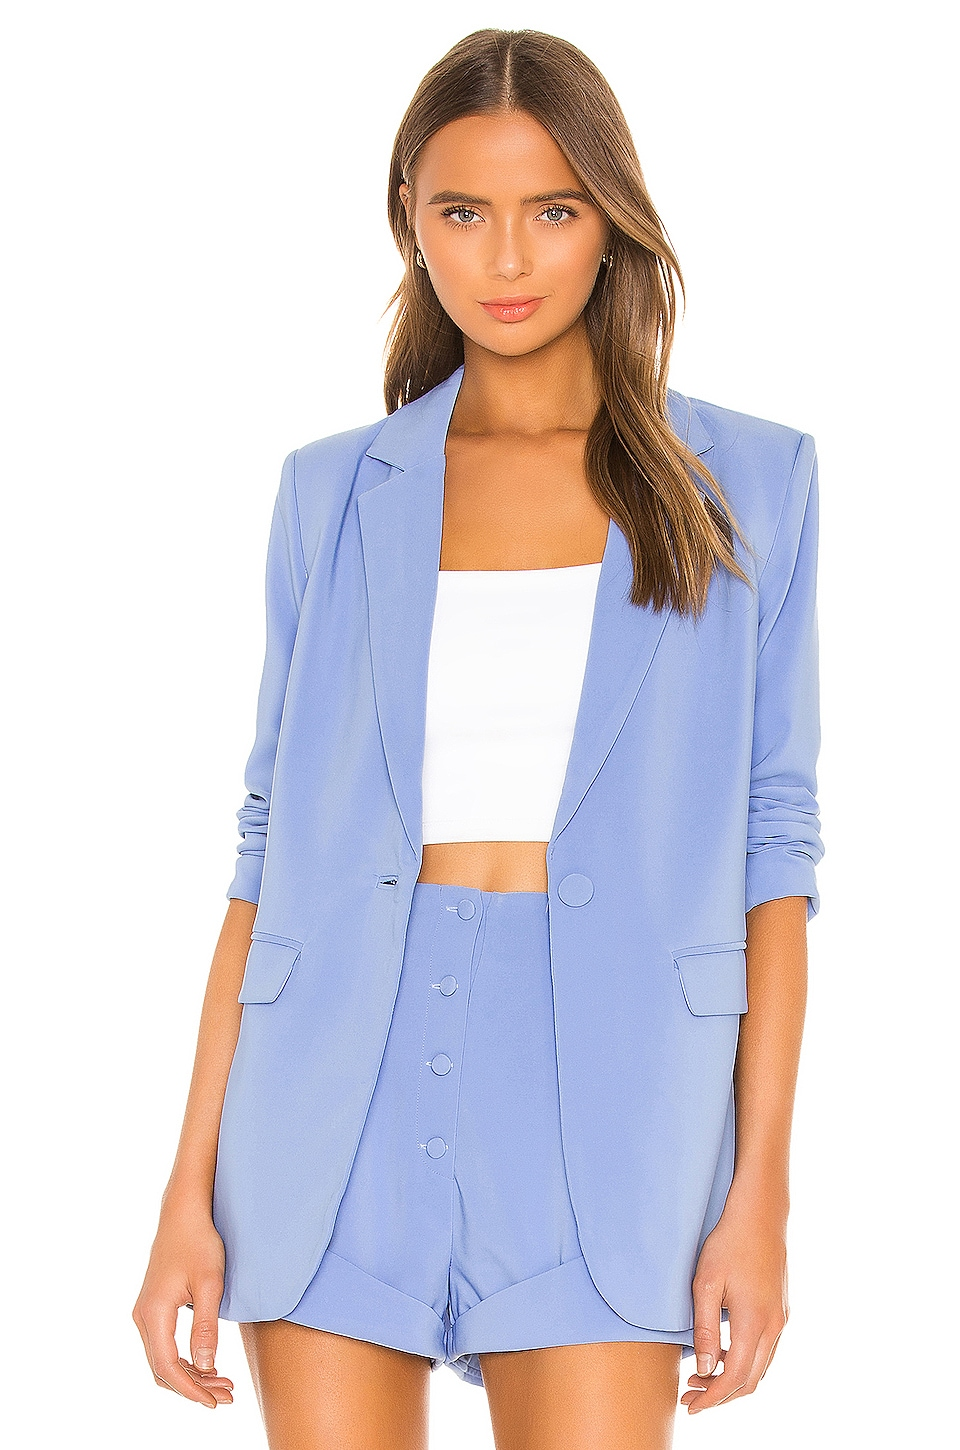 Arielle Blazer by Camila Coelho, available on revolve.com for $178 Camila Coelho Outerwear Exact Product